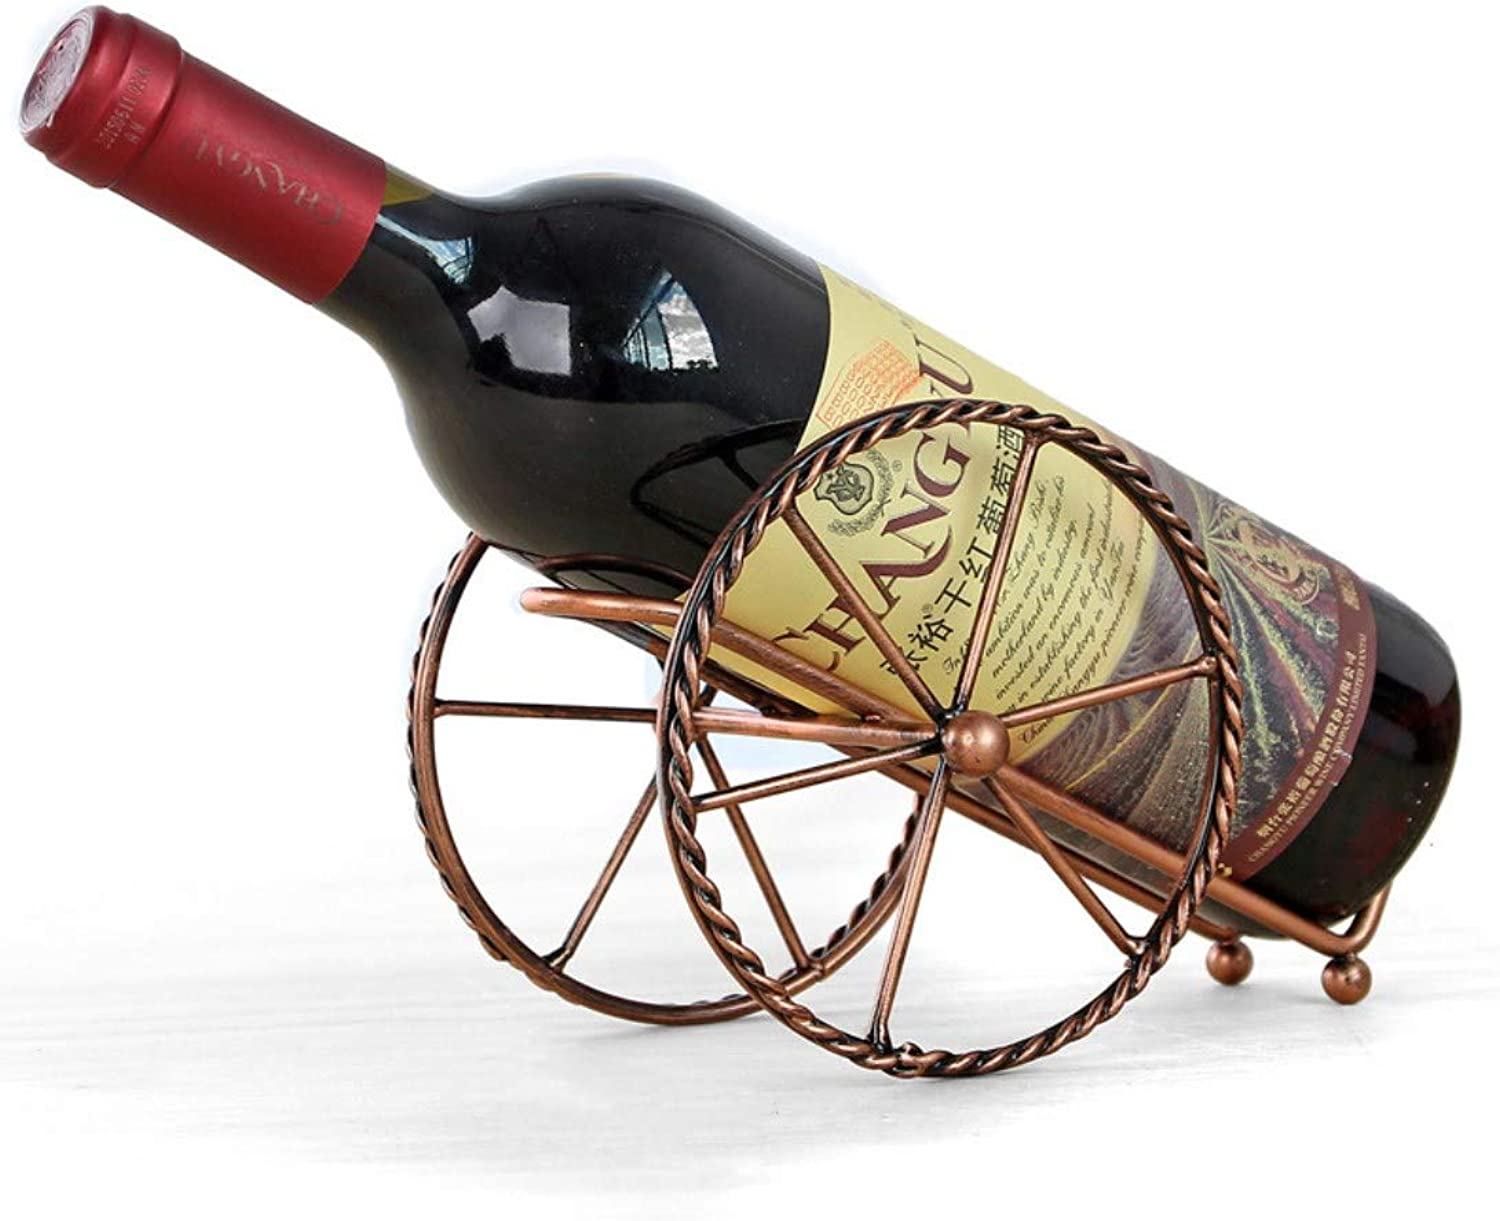 Retro Two-Wheeler Shaped Wine Bottle Holder Wine Rack Shelf Iron Sculpture Practical Home Decoration Crafts